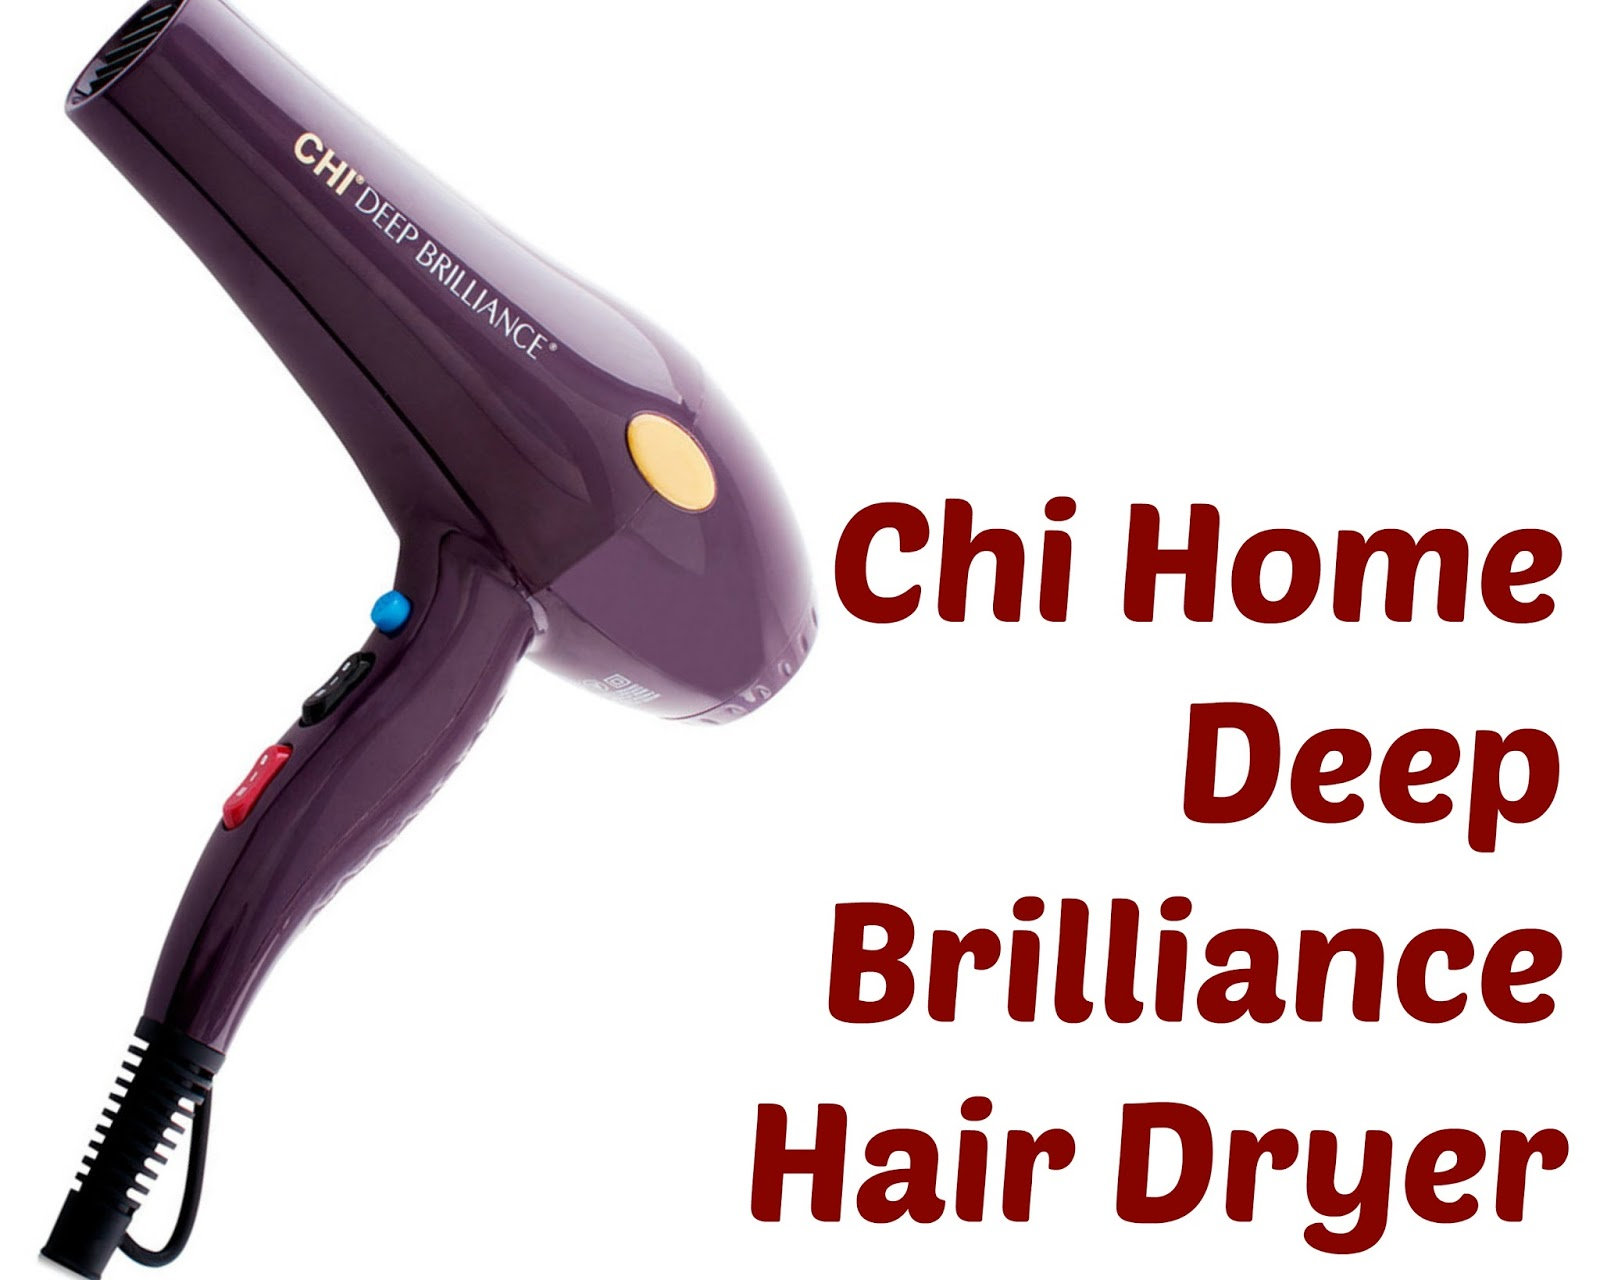 Click here to buy Chi Home Deep Brilliance Hair Dryer, the perfect hair dryer for Type 4 hair